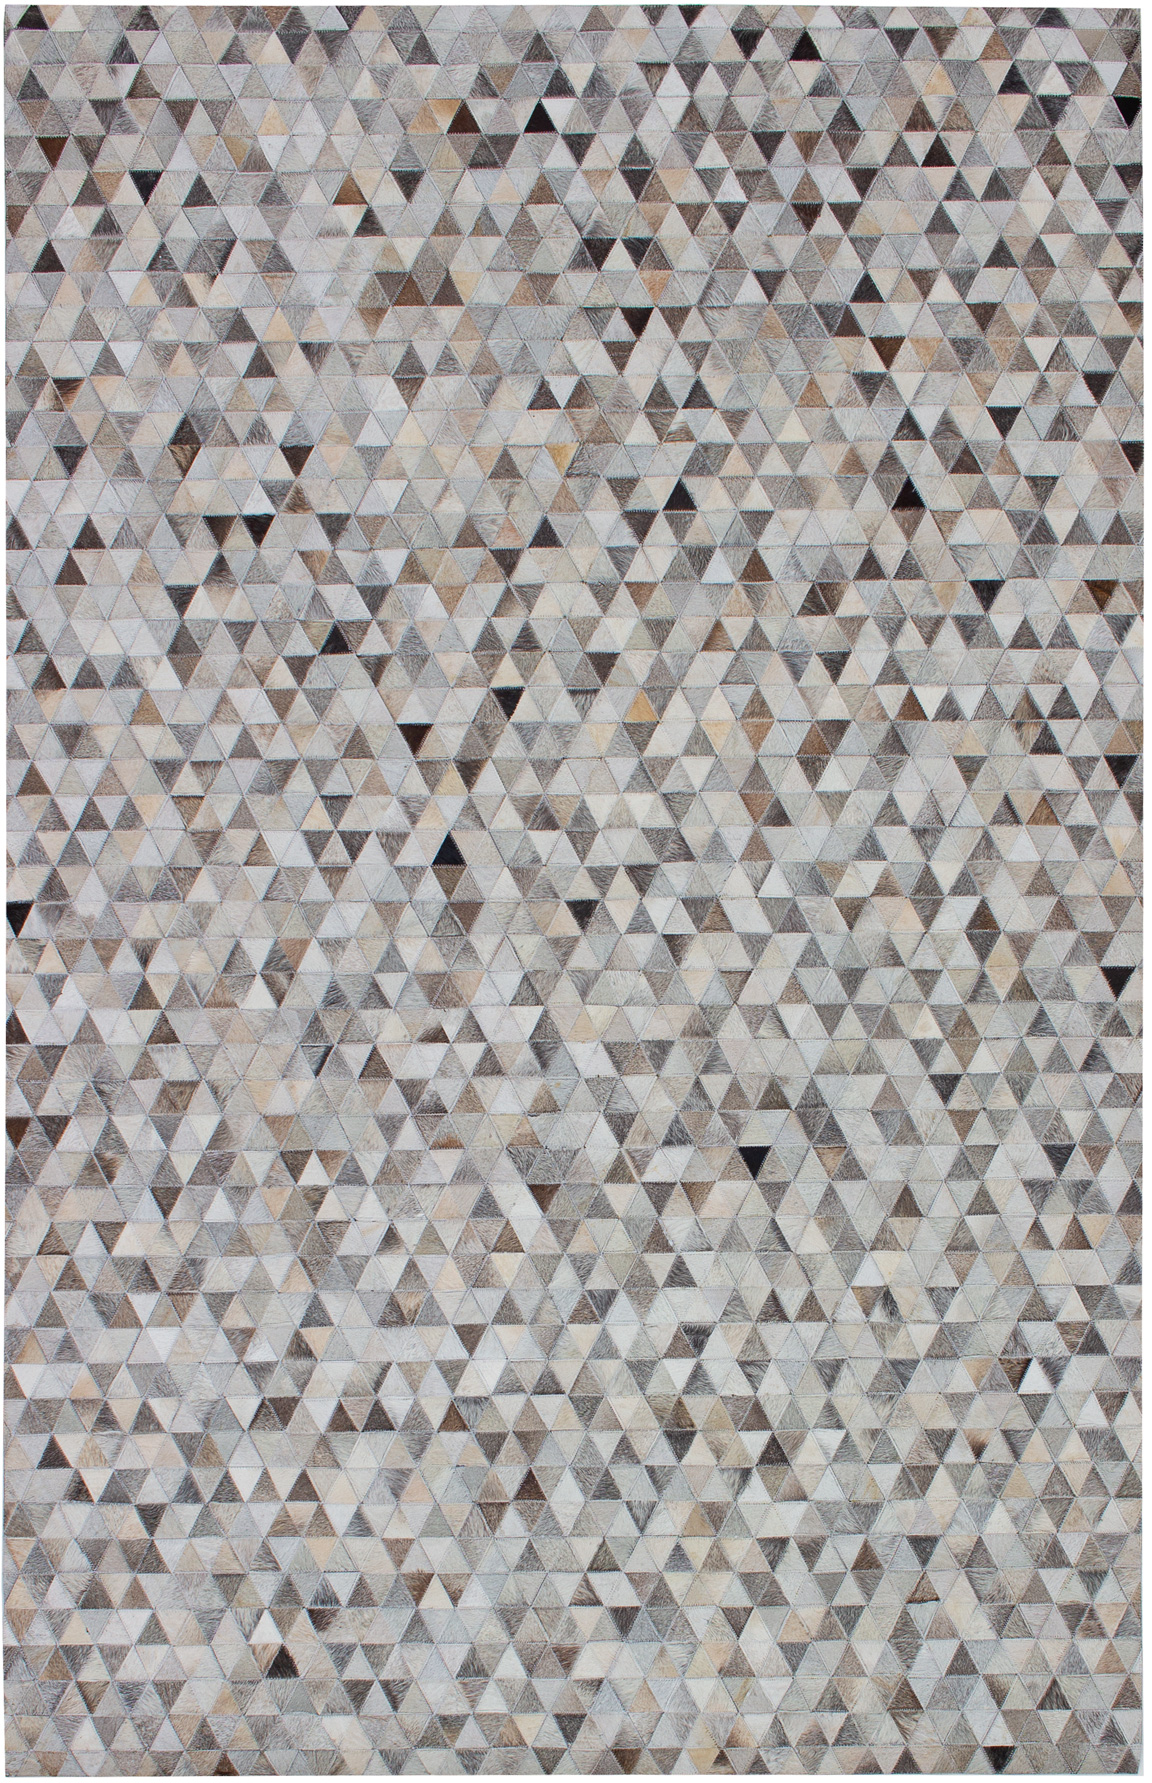 """Handmade Cowhide Patchwork Grey Leather Rug 5'2"""" x 8'1"""" Size: 5'2"""" x 8'1"""""""